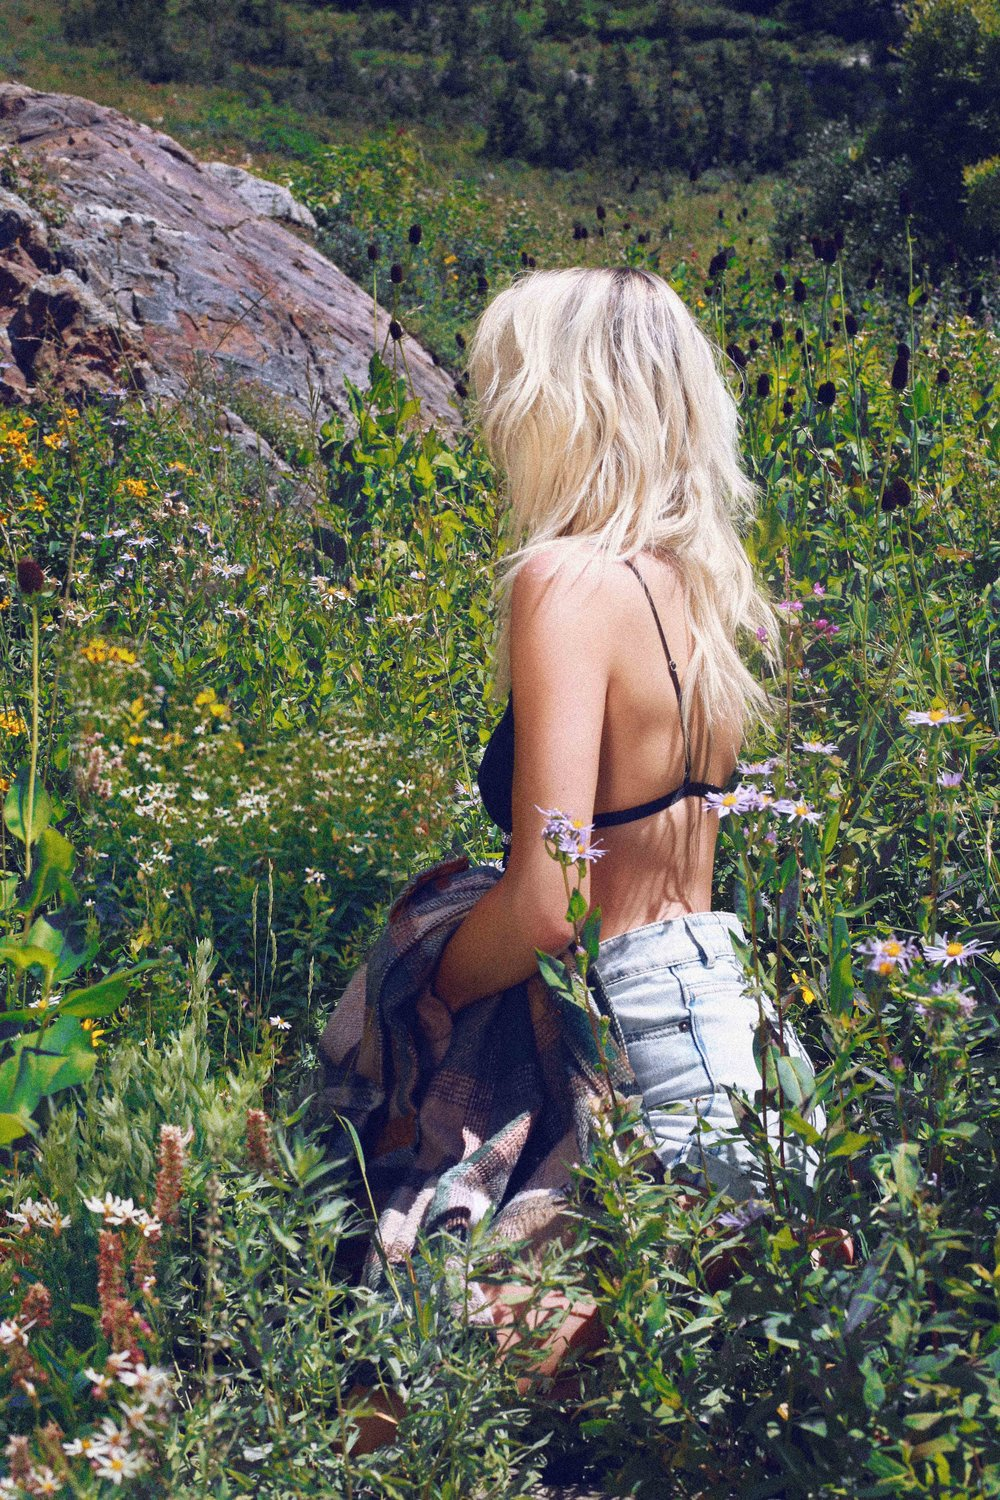 FLOWER FIELDS OF UTAH - Fashion Photo Shoot Story shot in Albion Basin SLC by Alyssa Risley - IG @alyssarisley